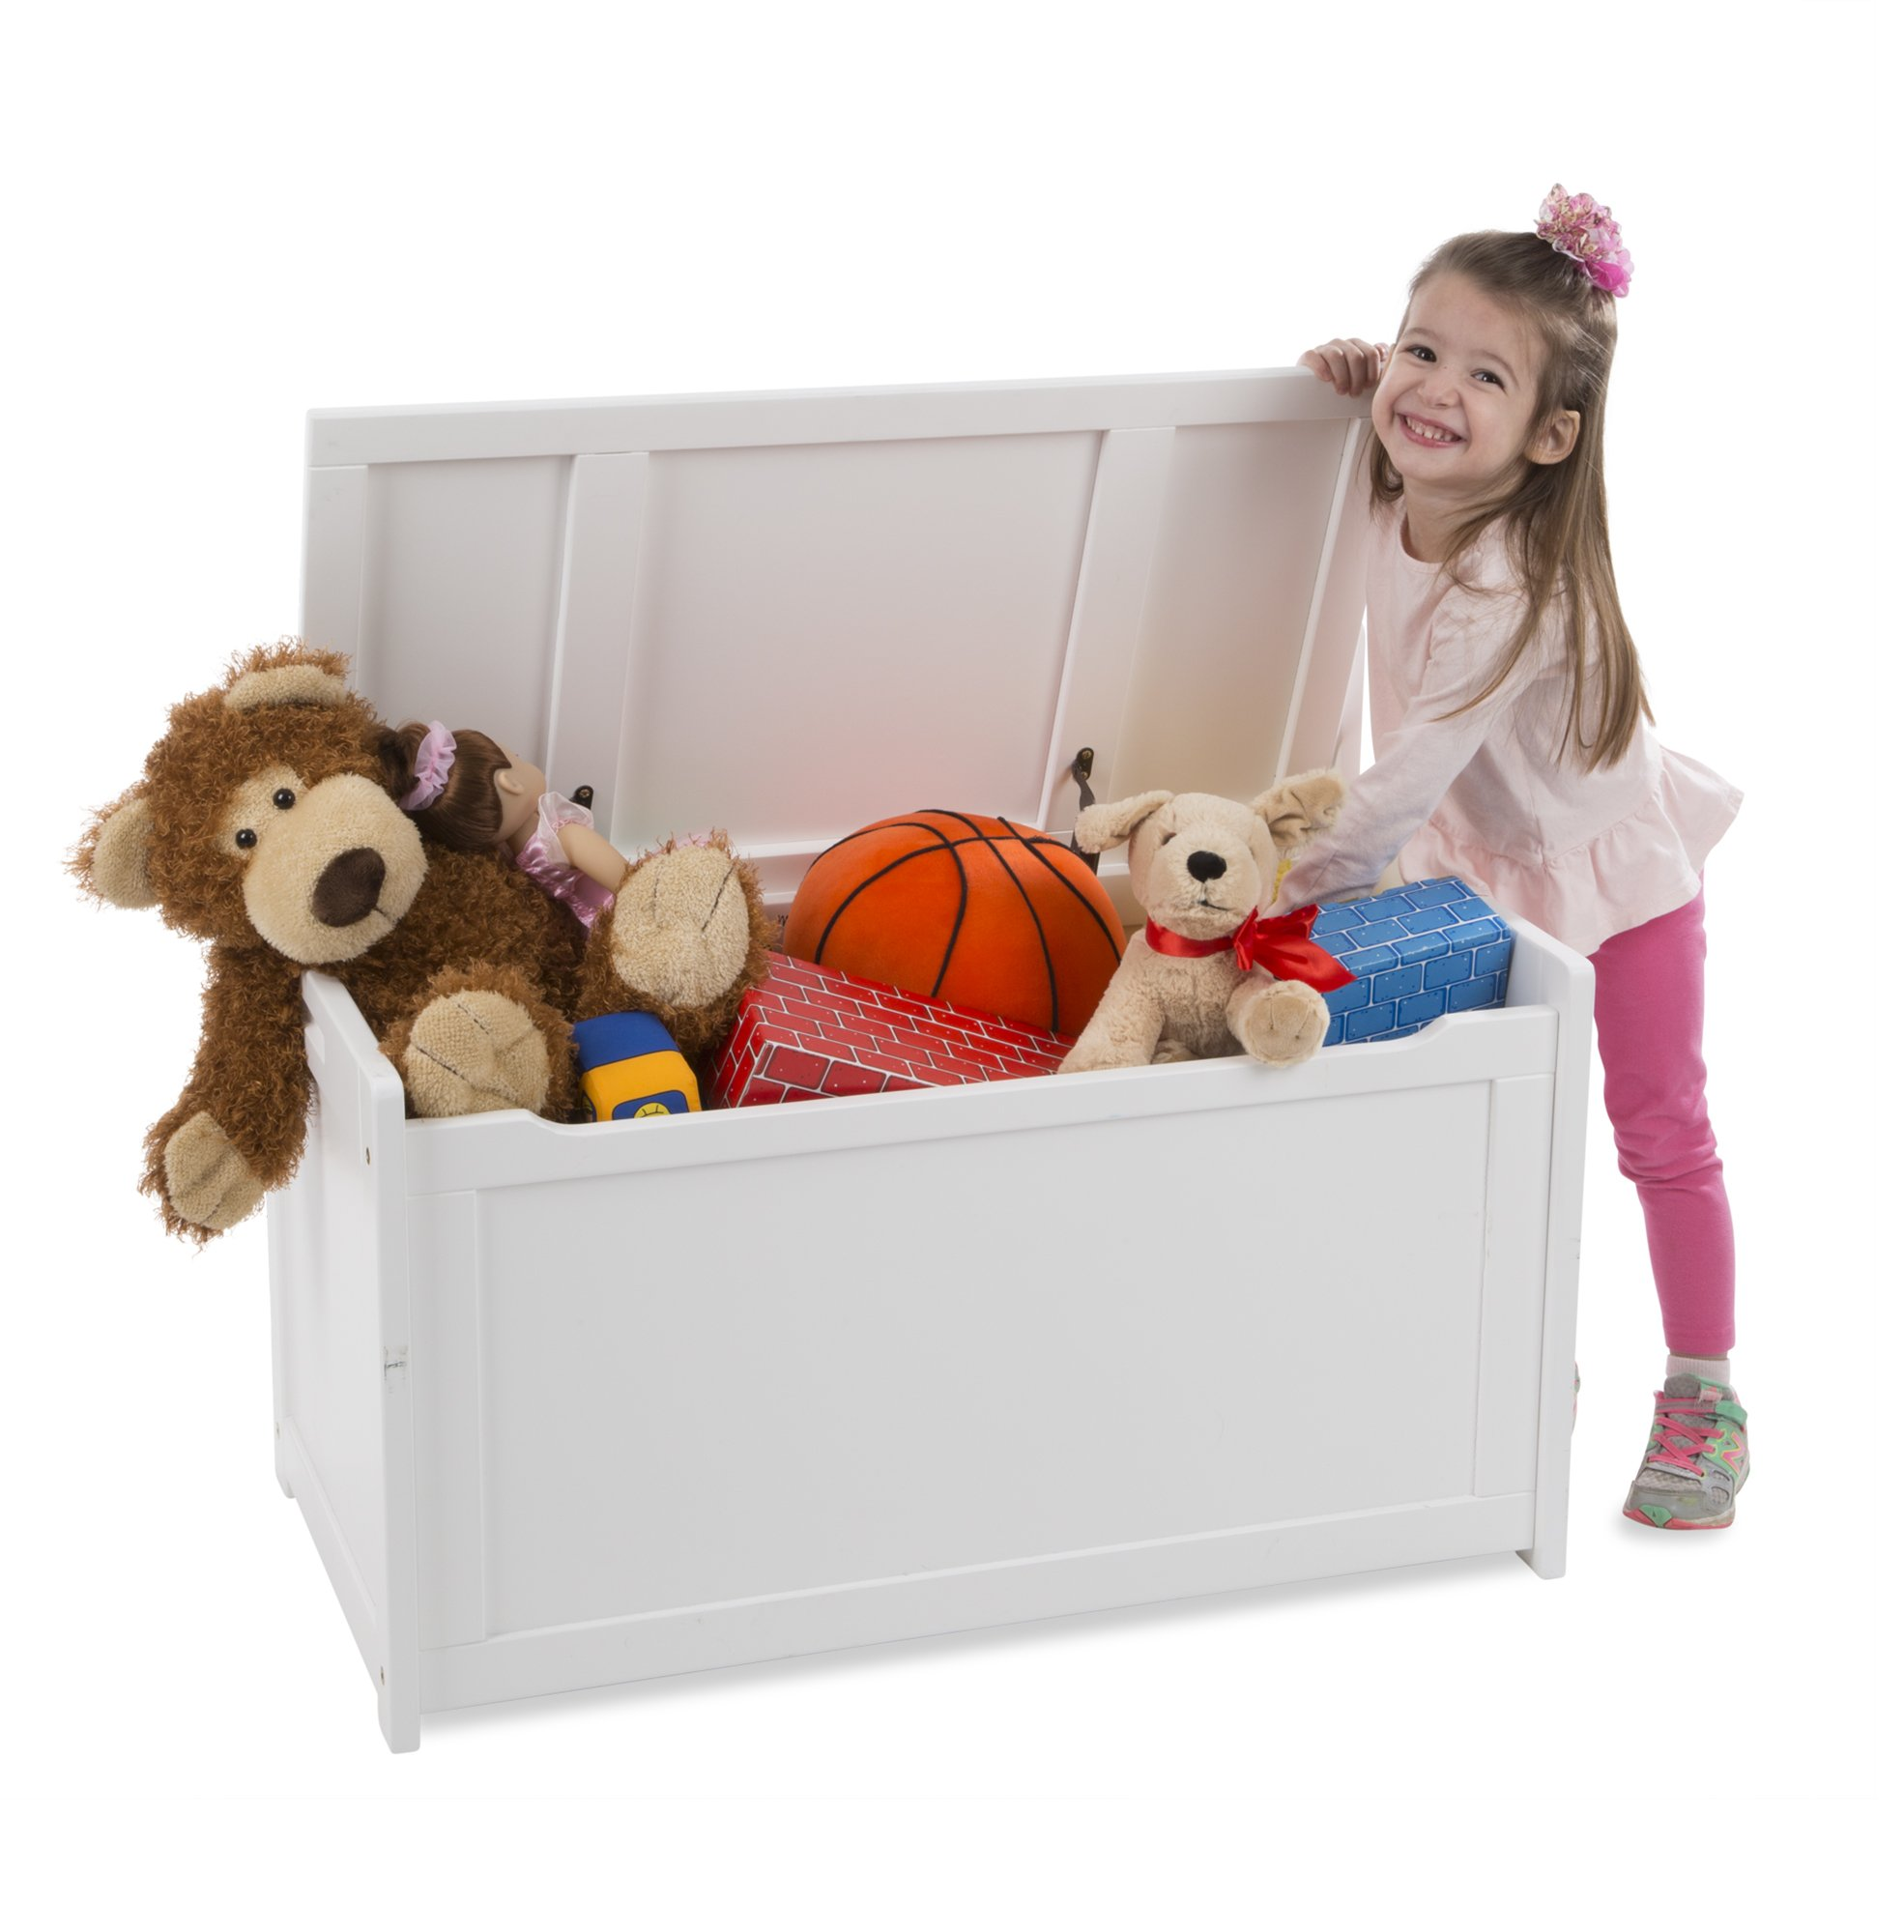 Melissa & Doug Toy Chest - White Children's Furniture by Melissa & Doug (Image #2)